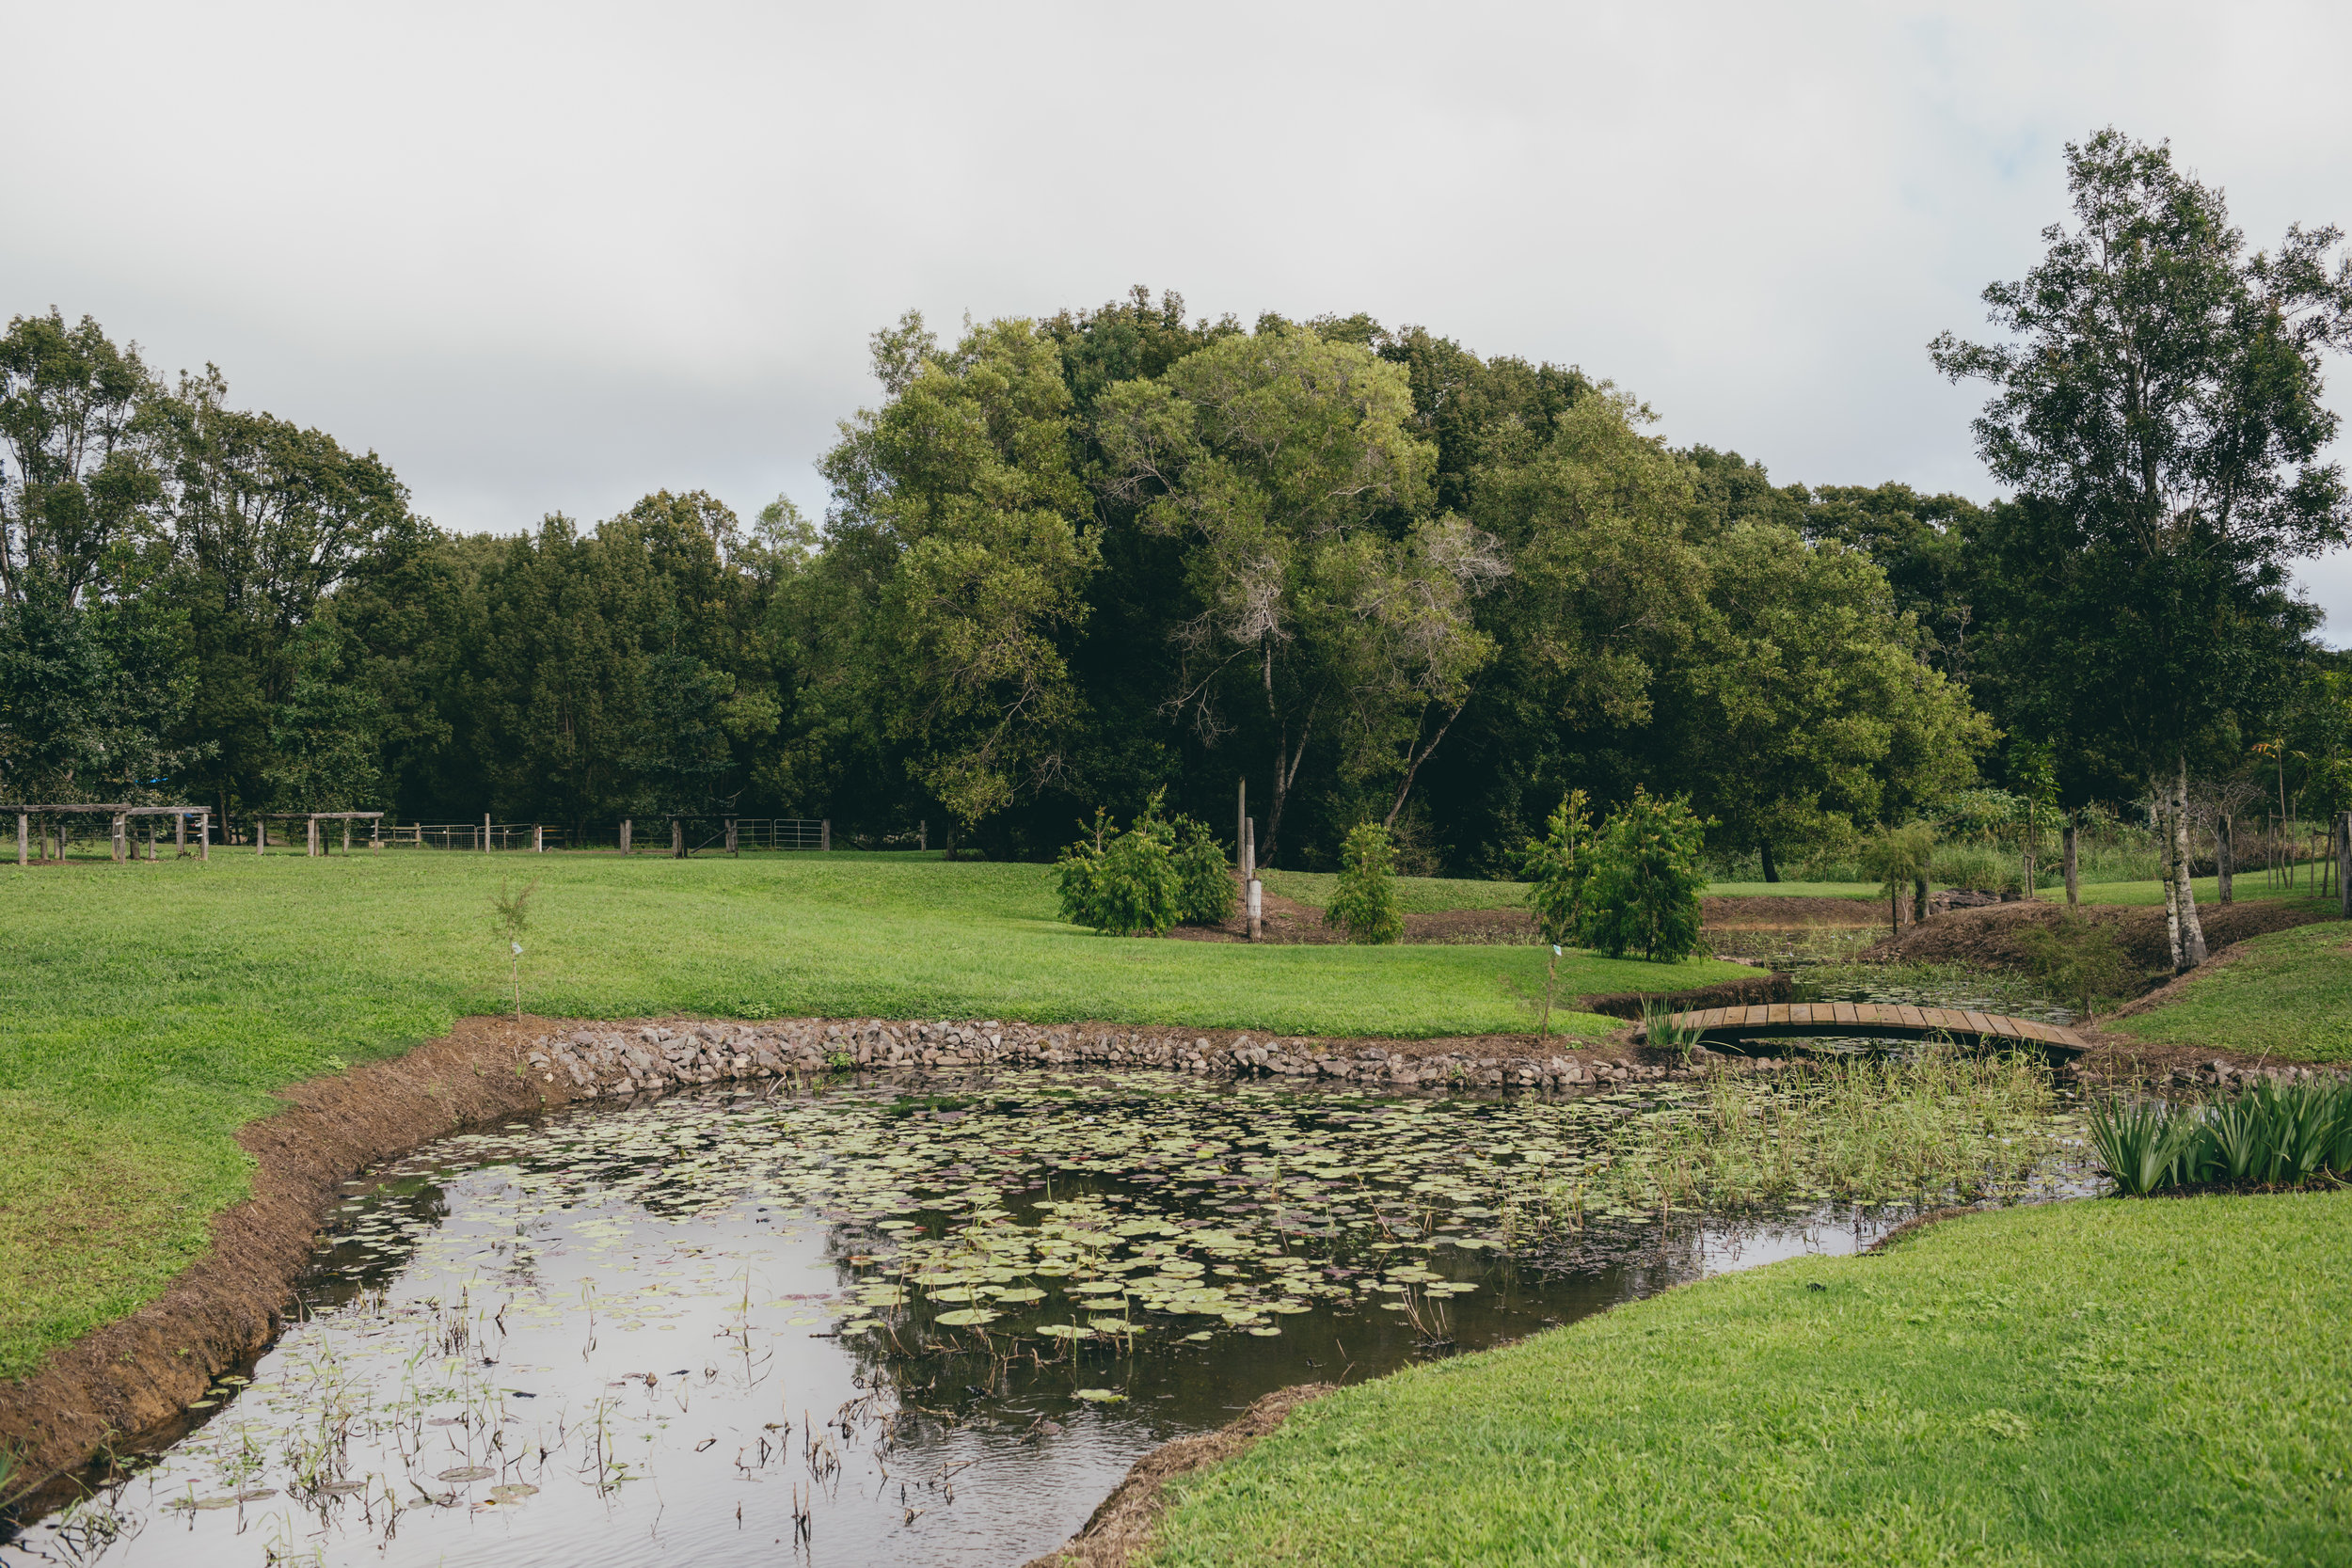 Property dam covered in lily pads